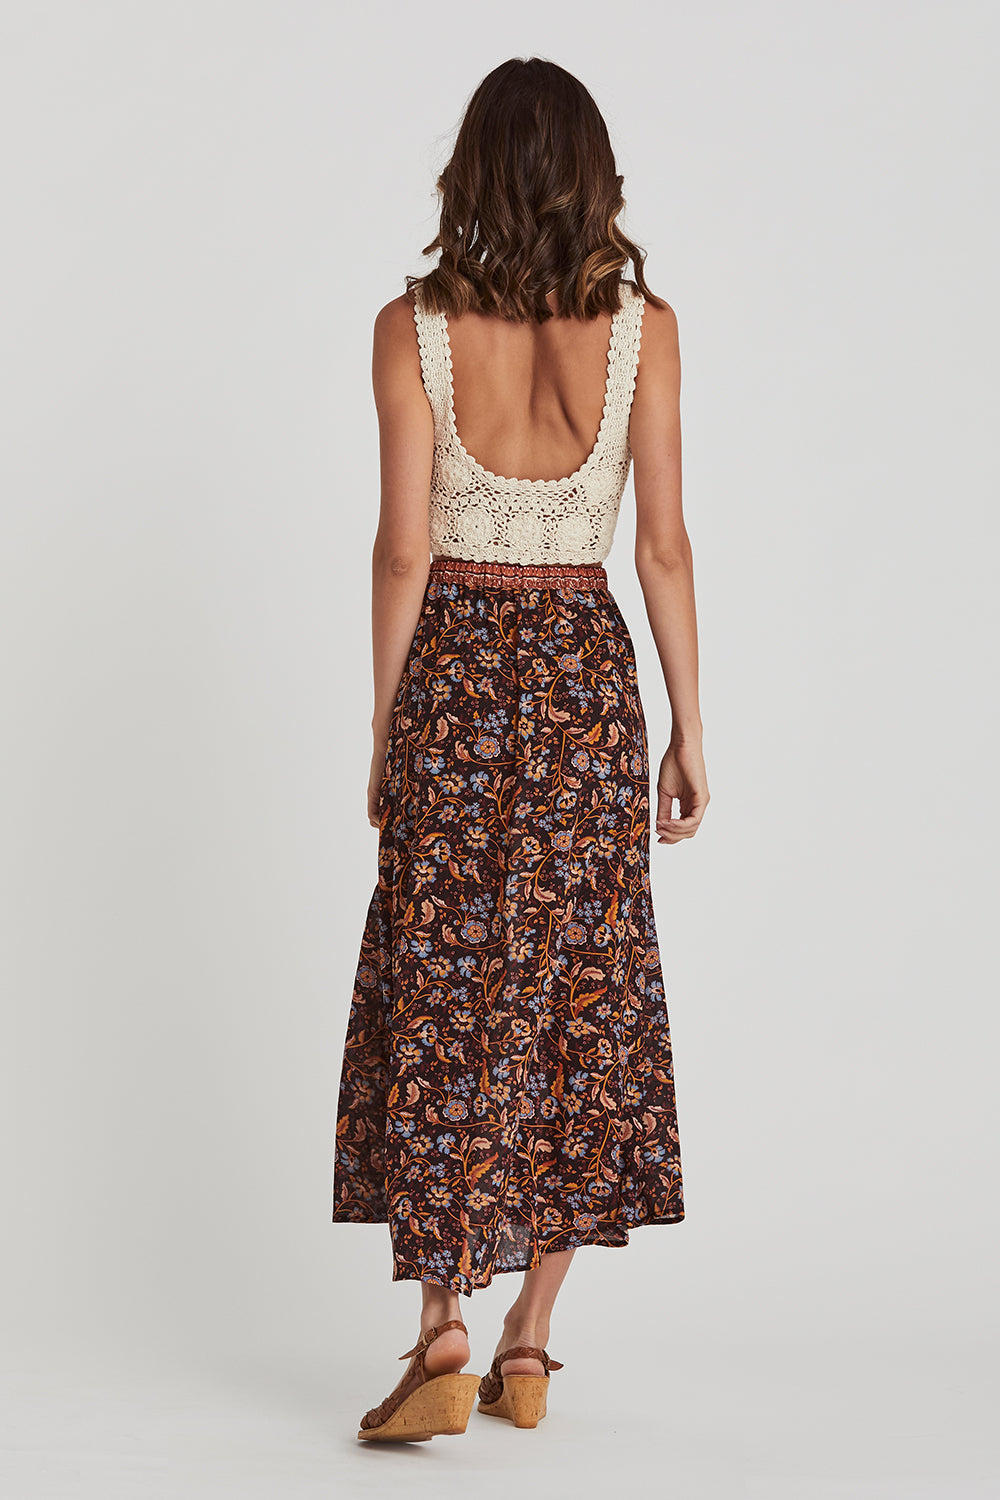 Daisy Chain Skirt in Amber